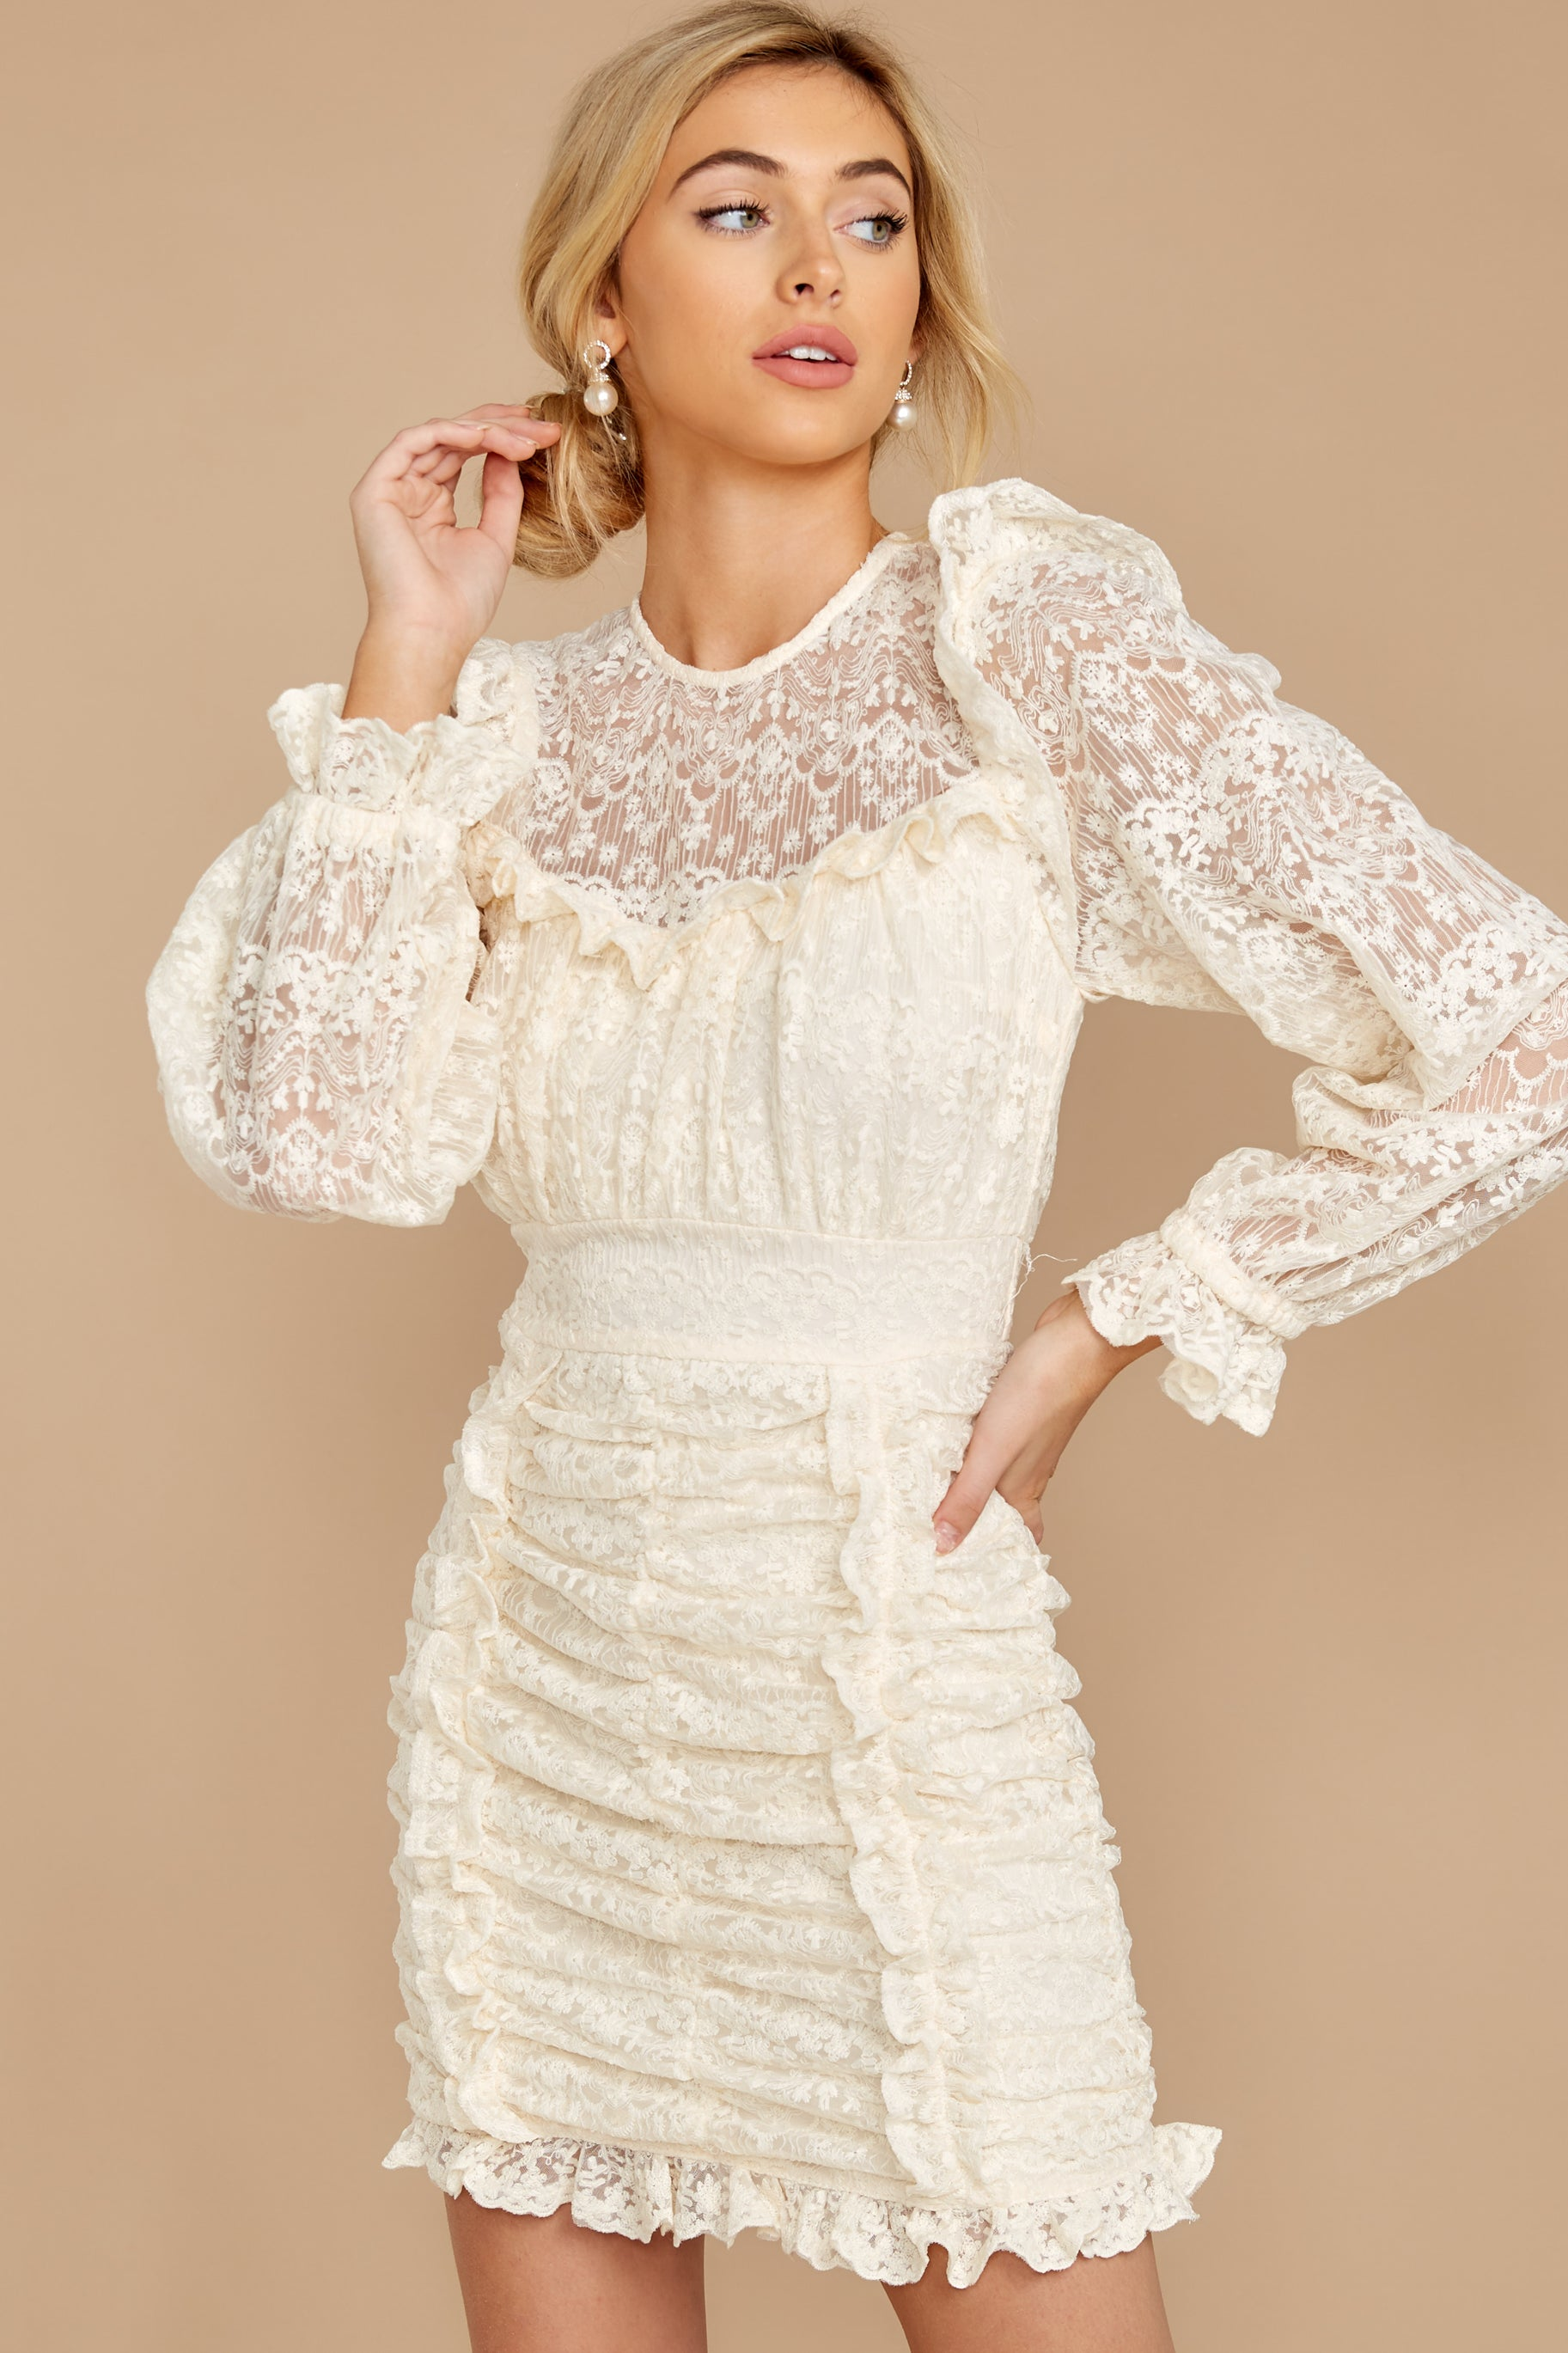 7 Talk About Love Cream Lace Dress at reddress.com